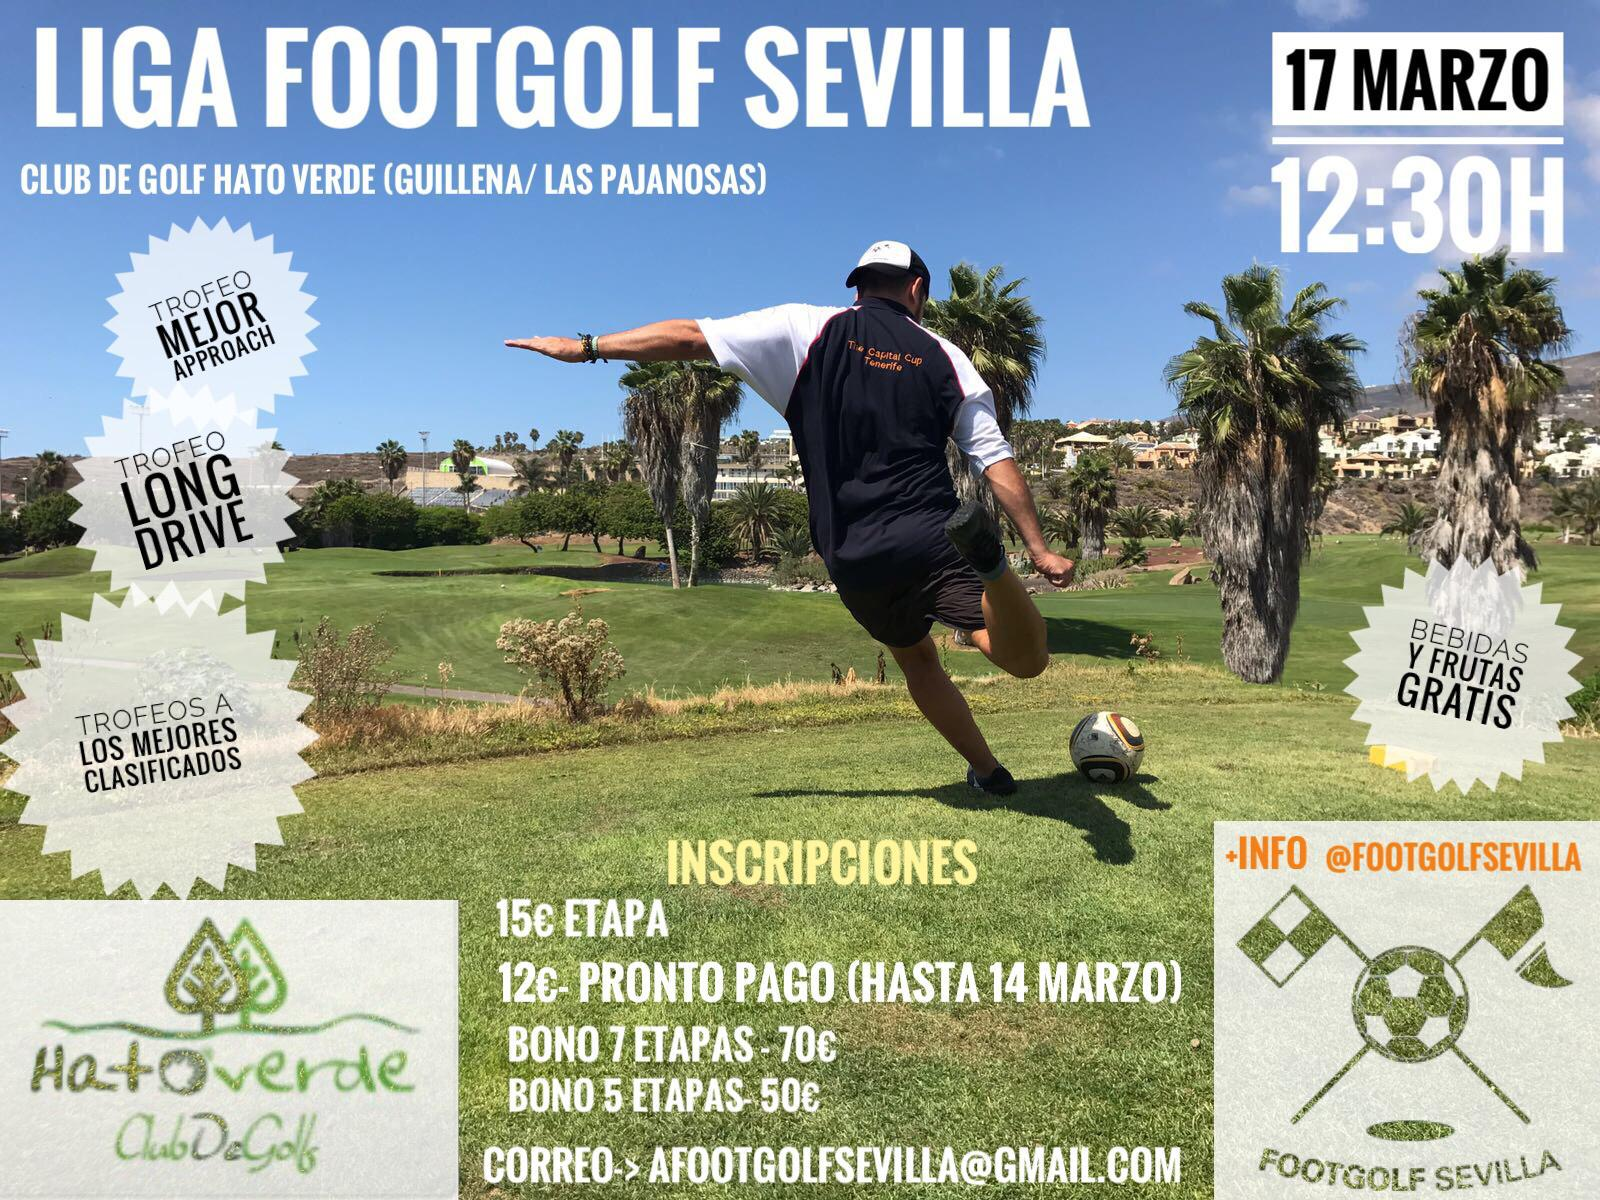 Liga Footgolf Hato Verde